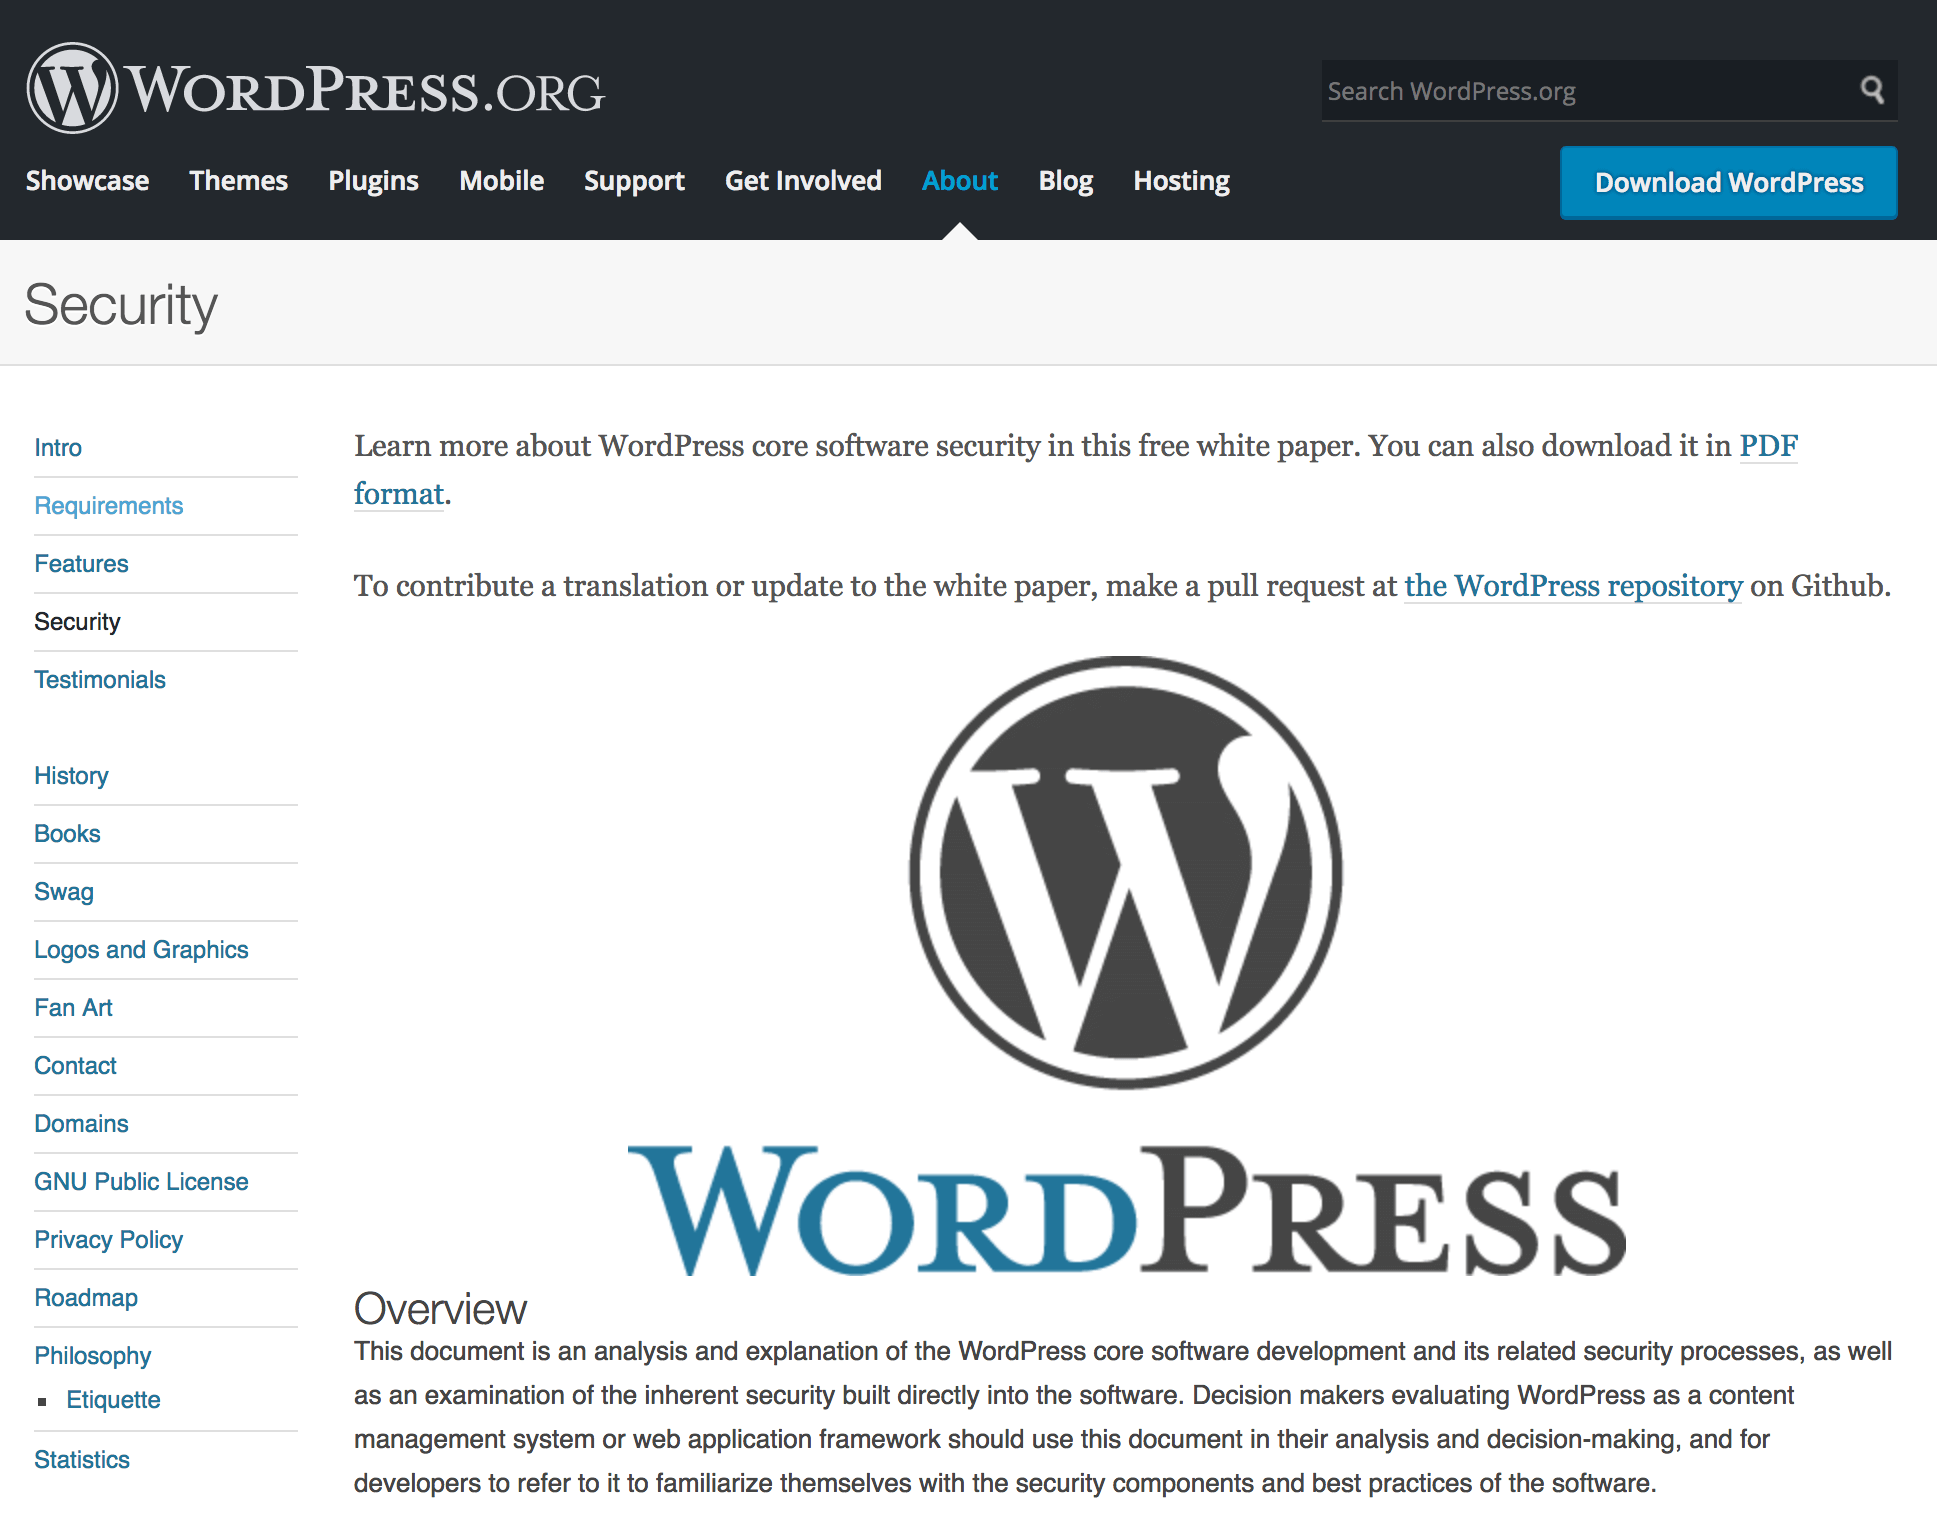 The WordPress security page.